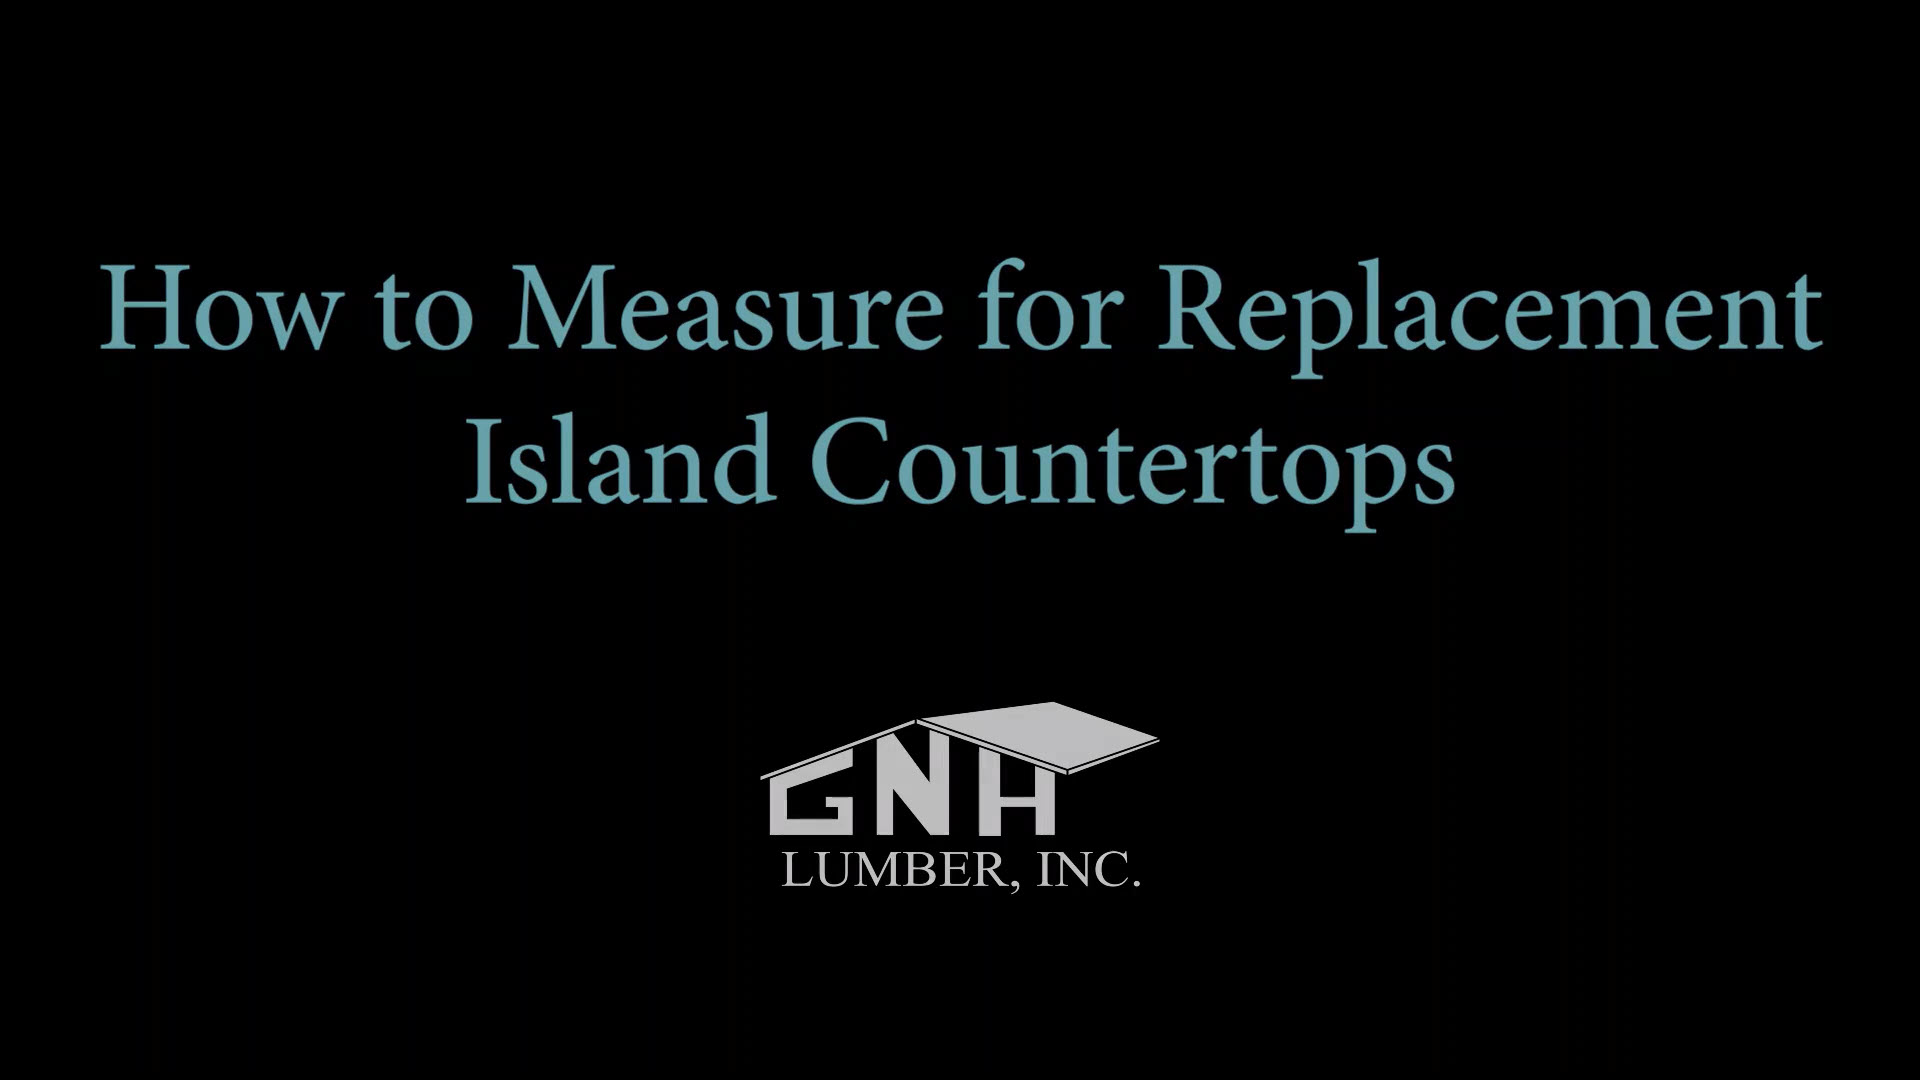 Watch video: How To Measure for Replacement Island Countertops